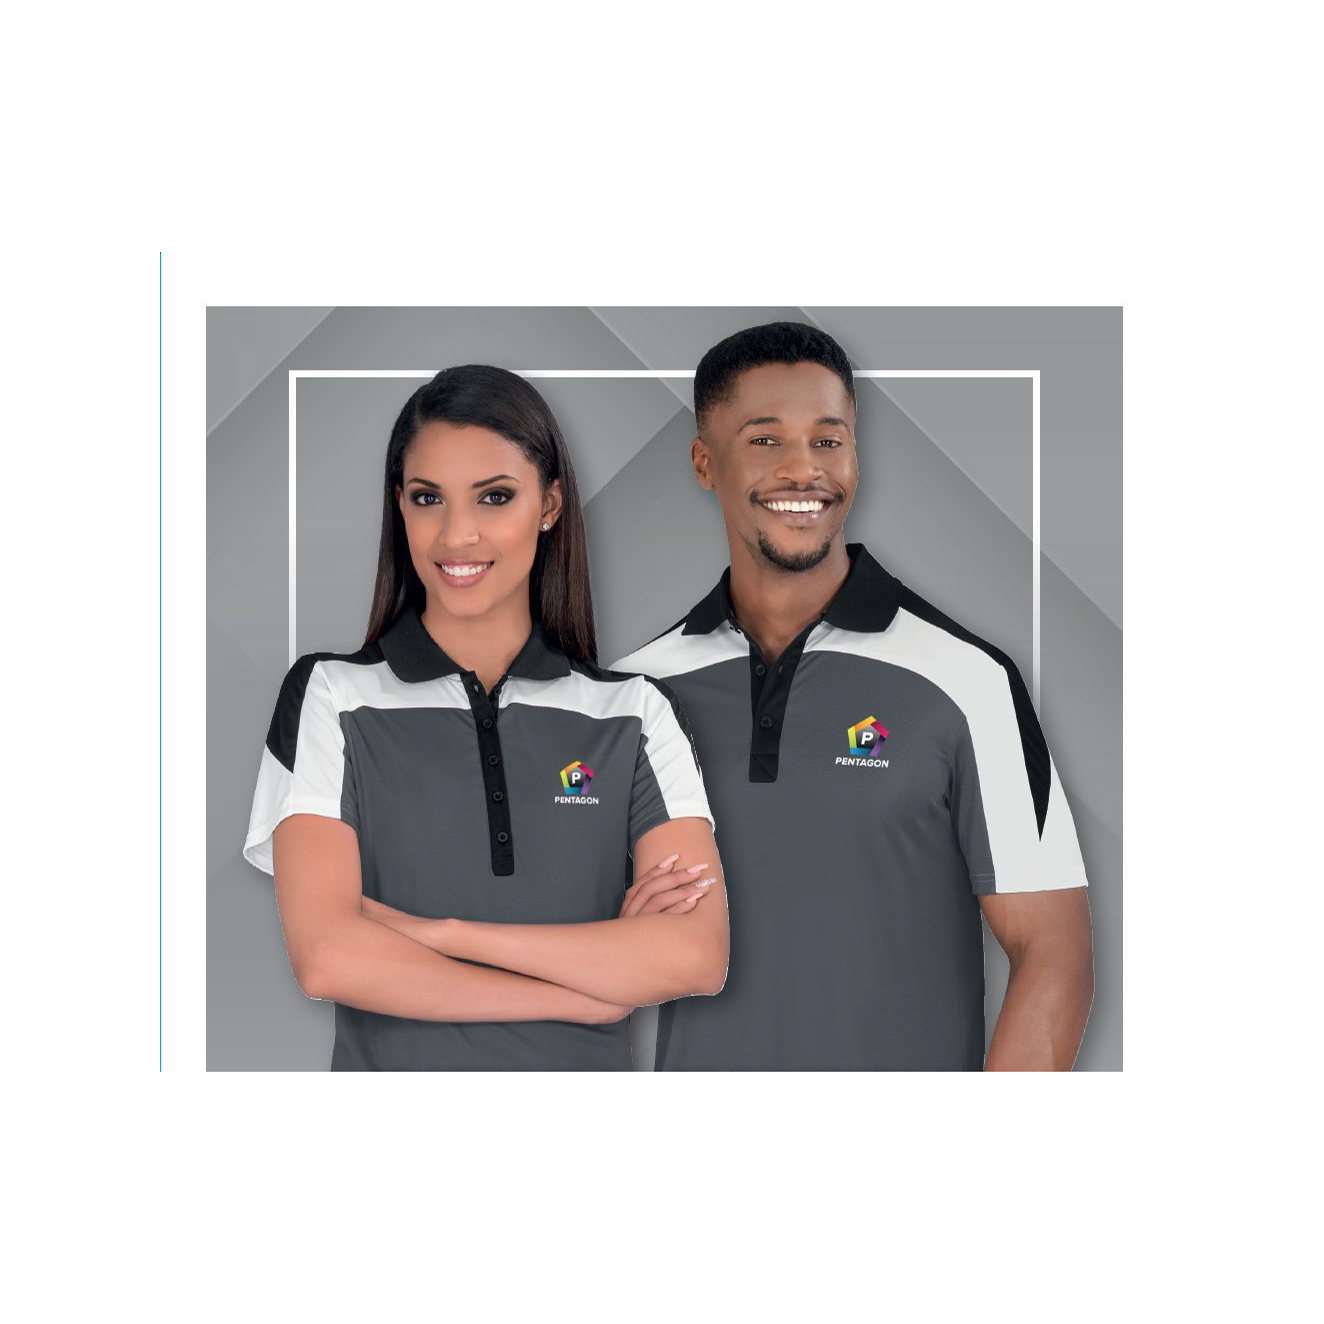 man and woman wearing corporate clothing